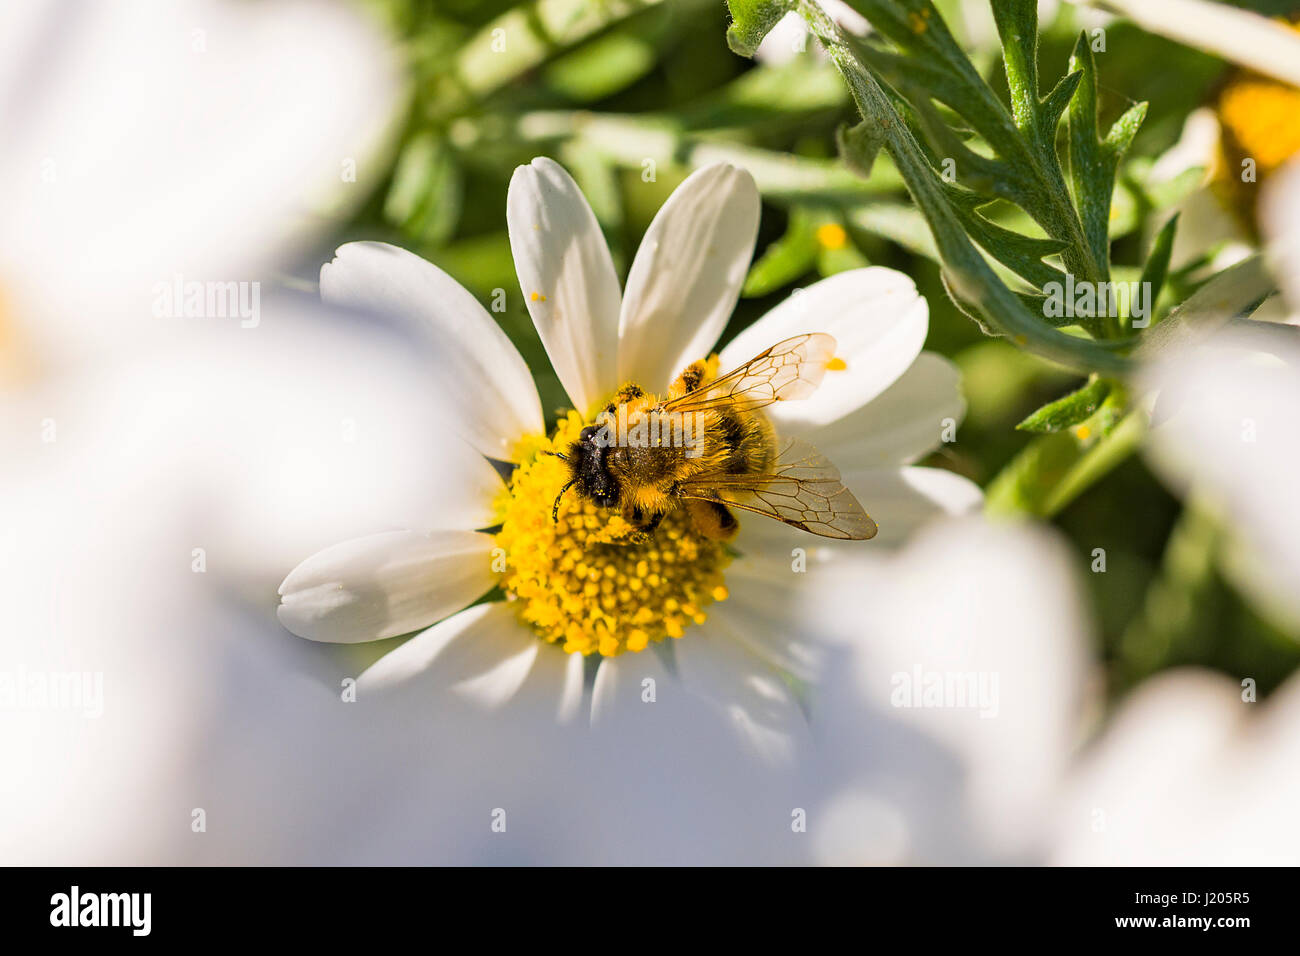 Early spring flowers for bees stock photos early spring flowers the honey bees are out in force collecting nectar around the early blooming flowers these mightylinksfo